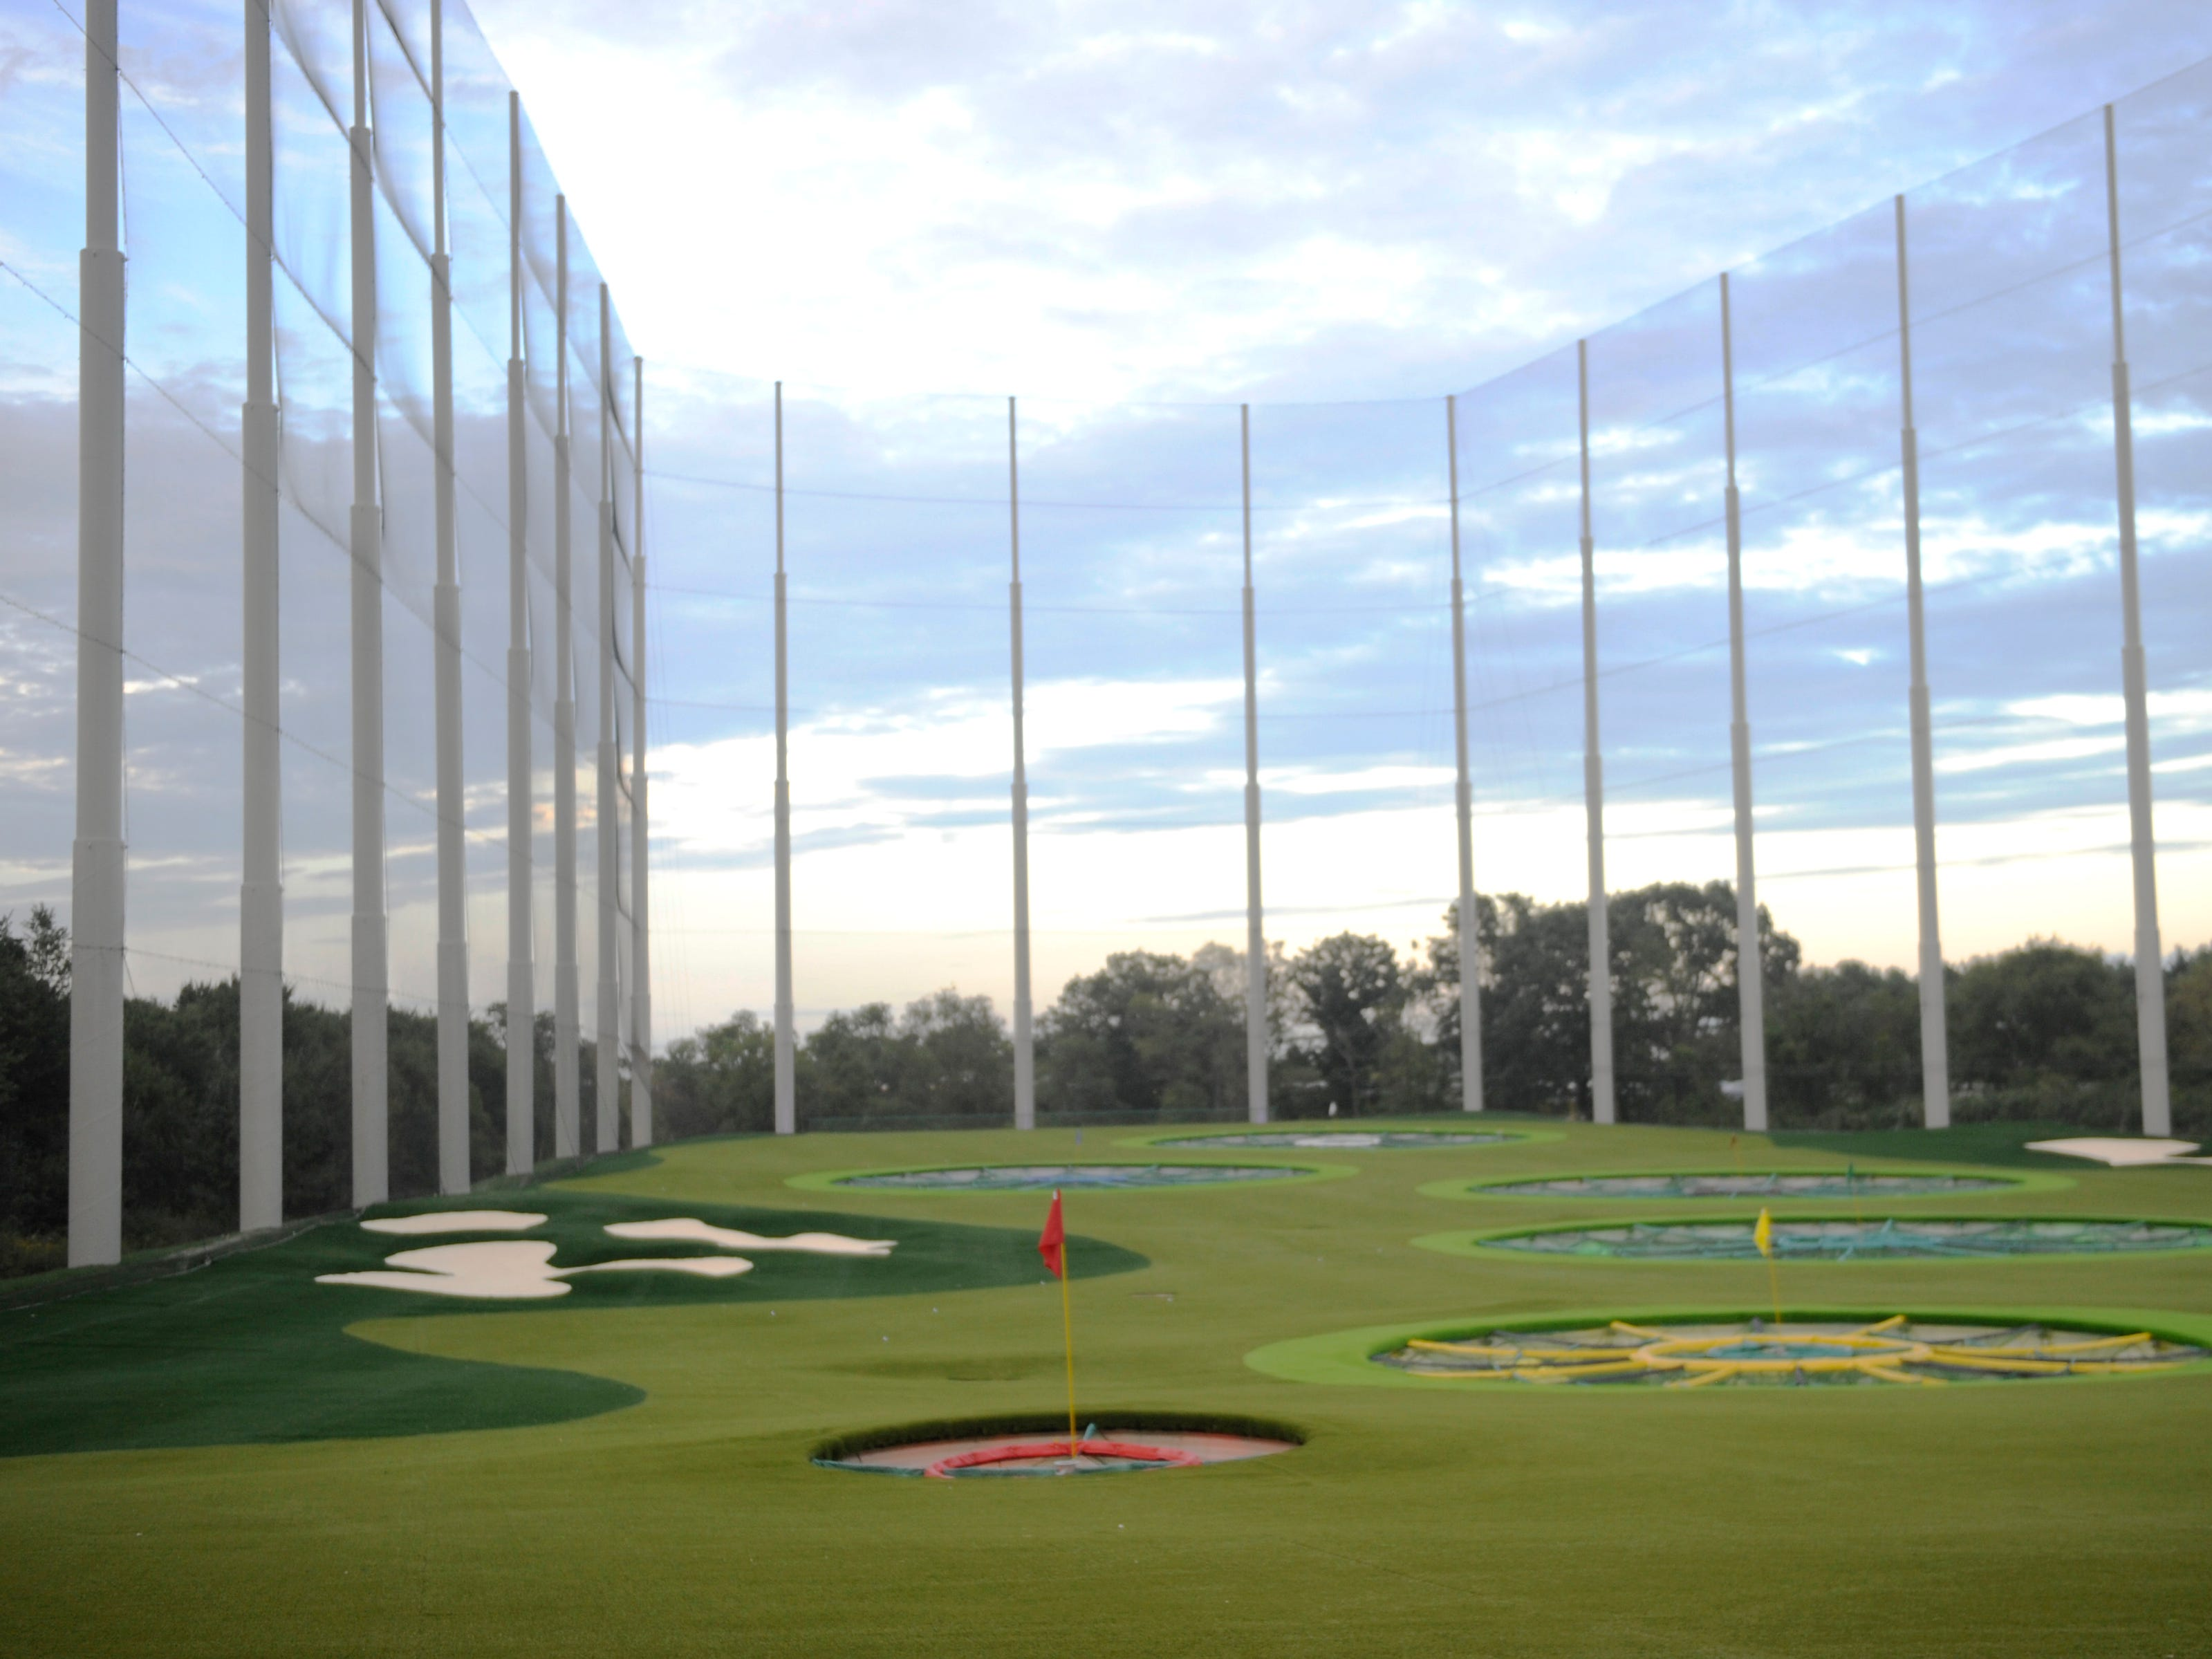 Topgolf in Mount Laurel opened its doors for a special tour of the facility on Wednesday, September 26.